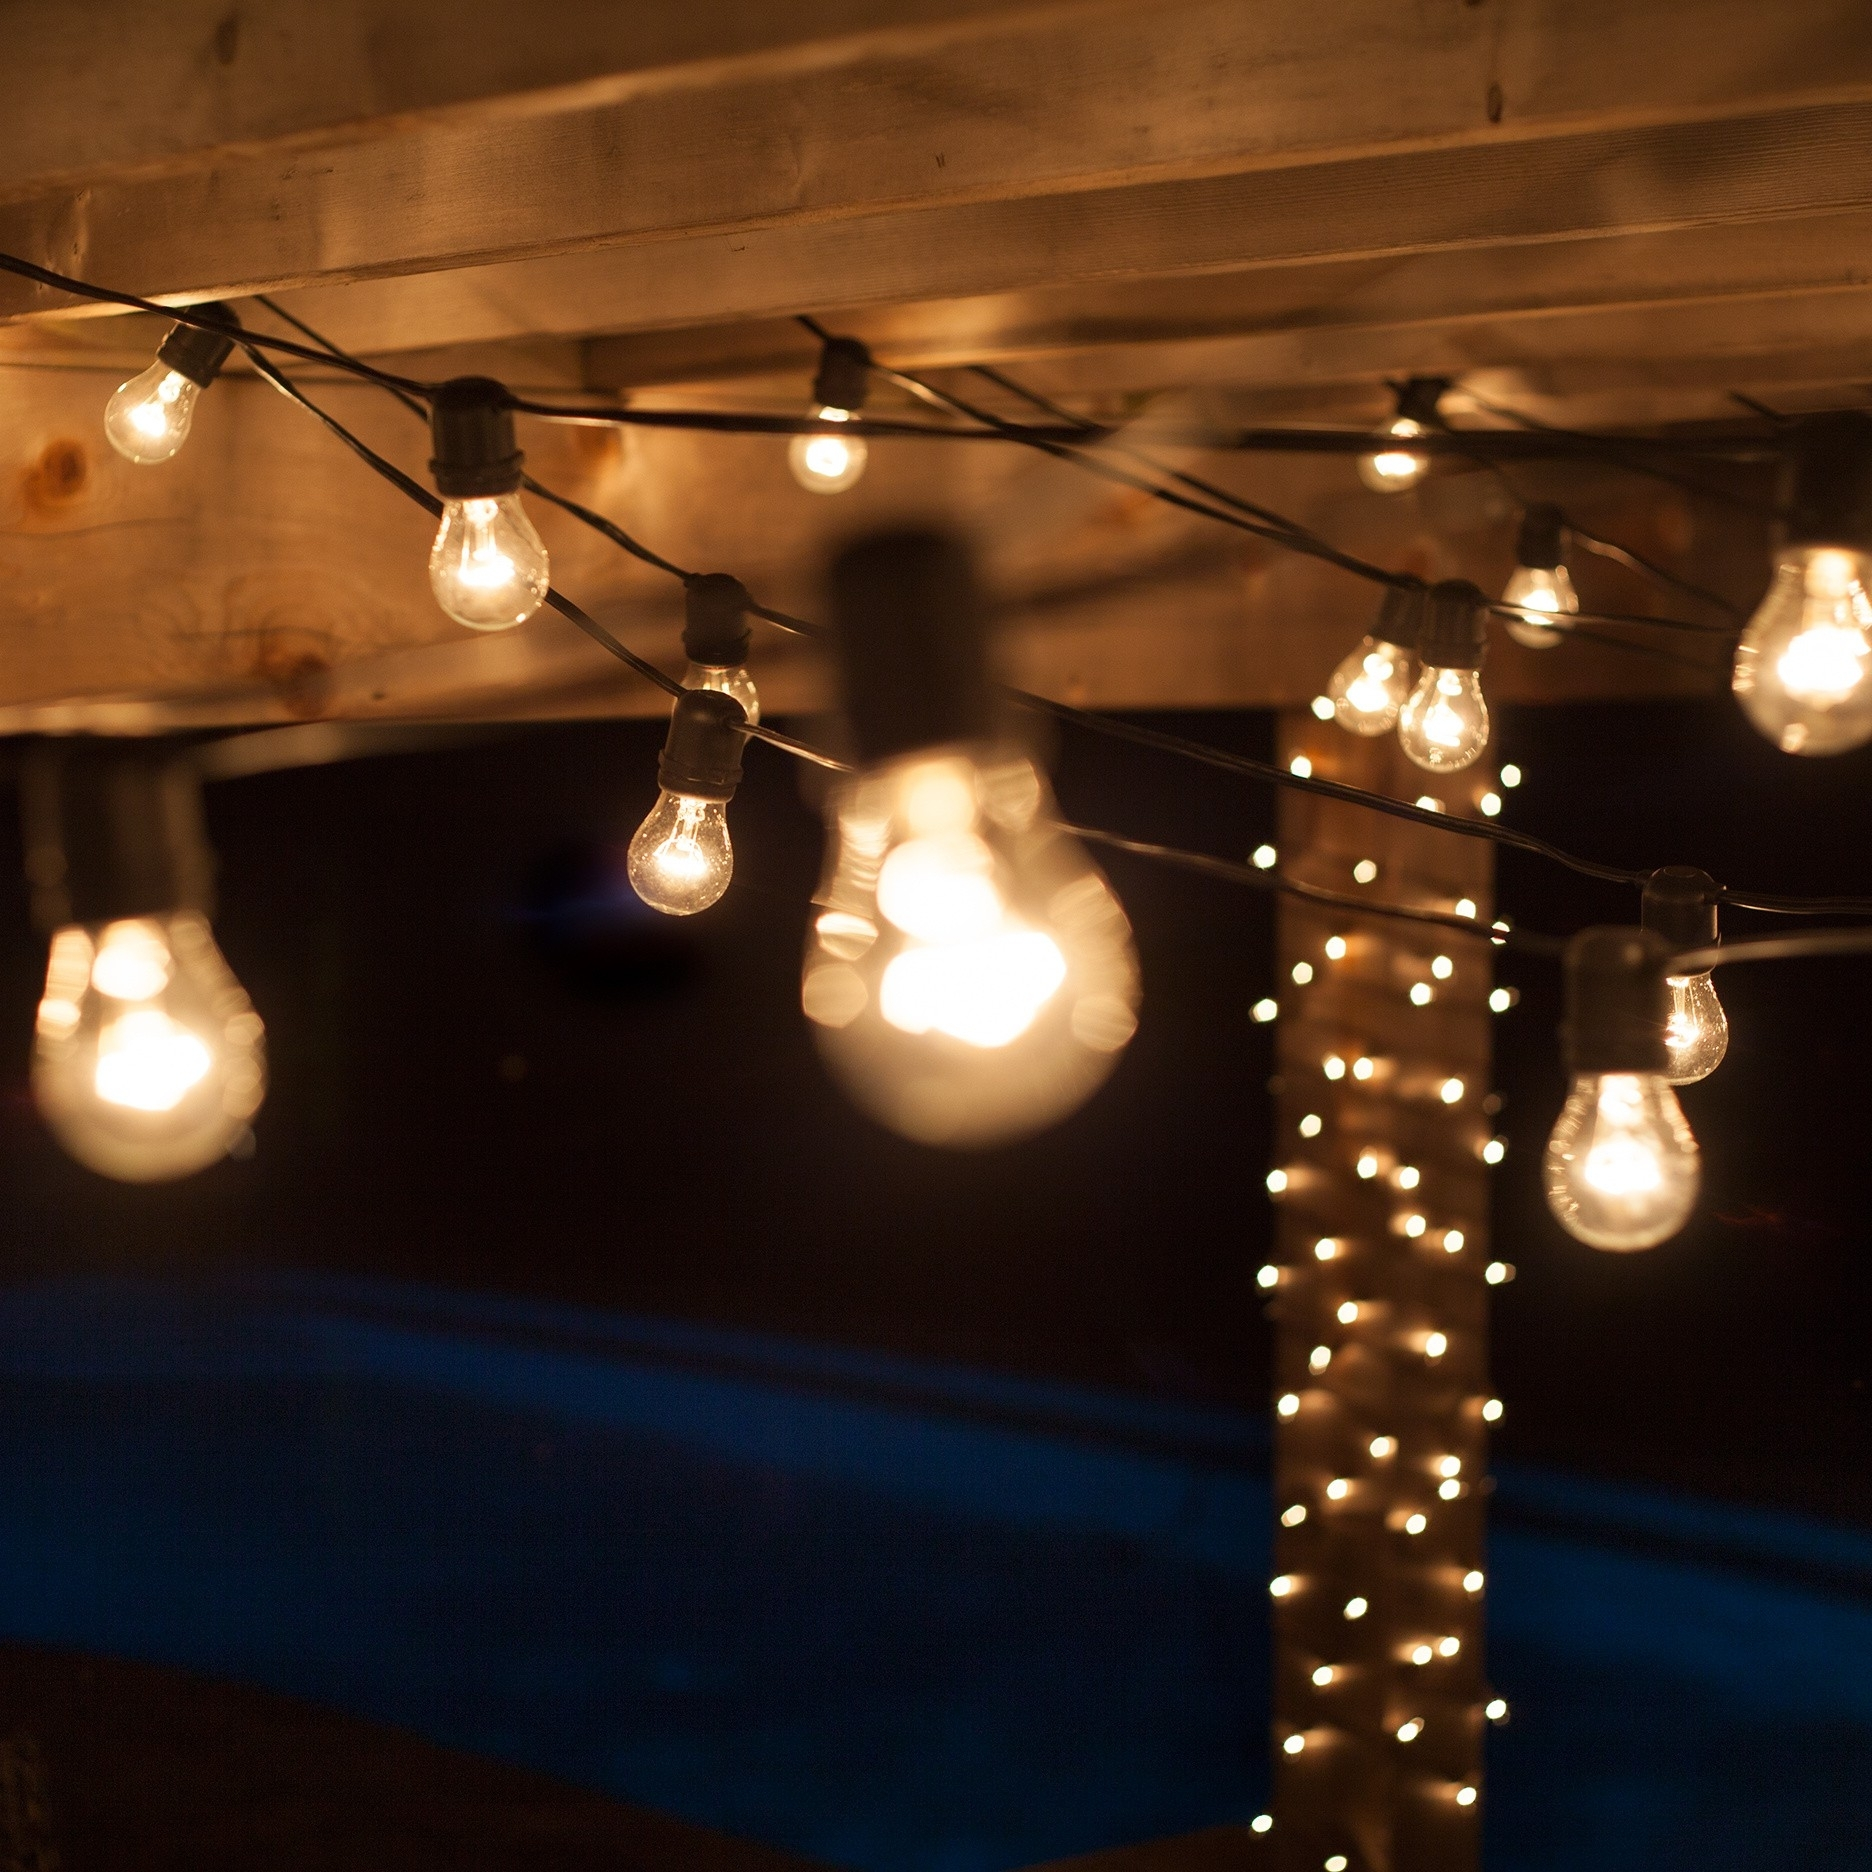 Lamp: Home Depot Outdoor String Patio Lights Outdoor Hanging Deck Lights Pertaining To Outdoor Hanging Deck Lights (View 9 of 15)